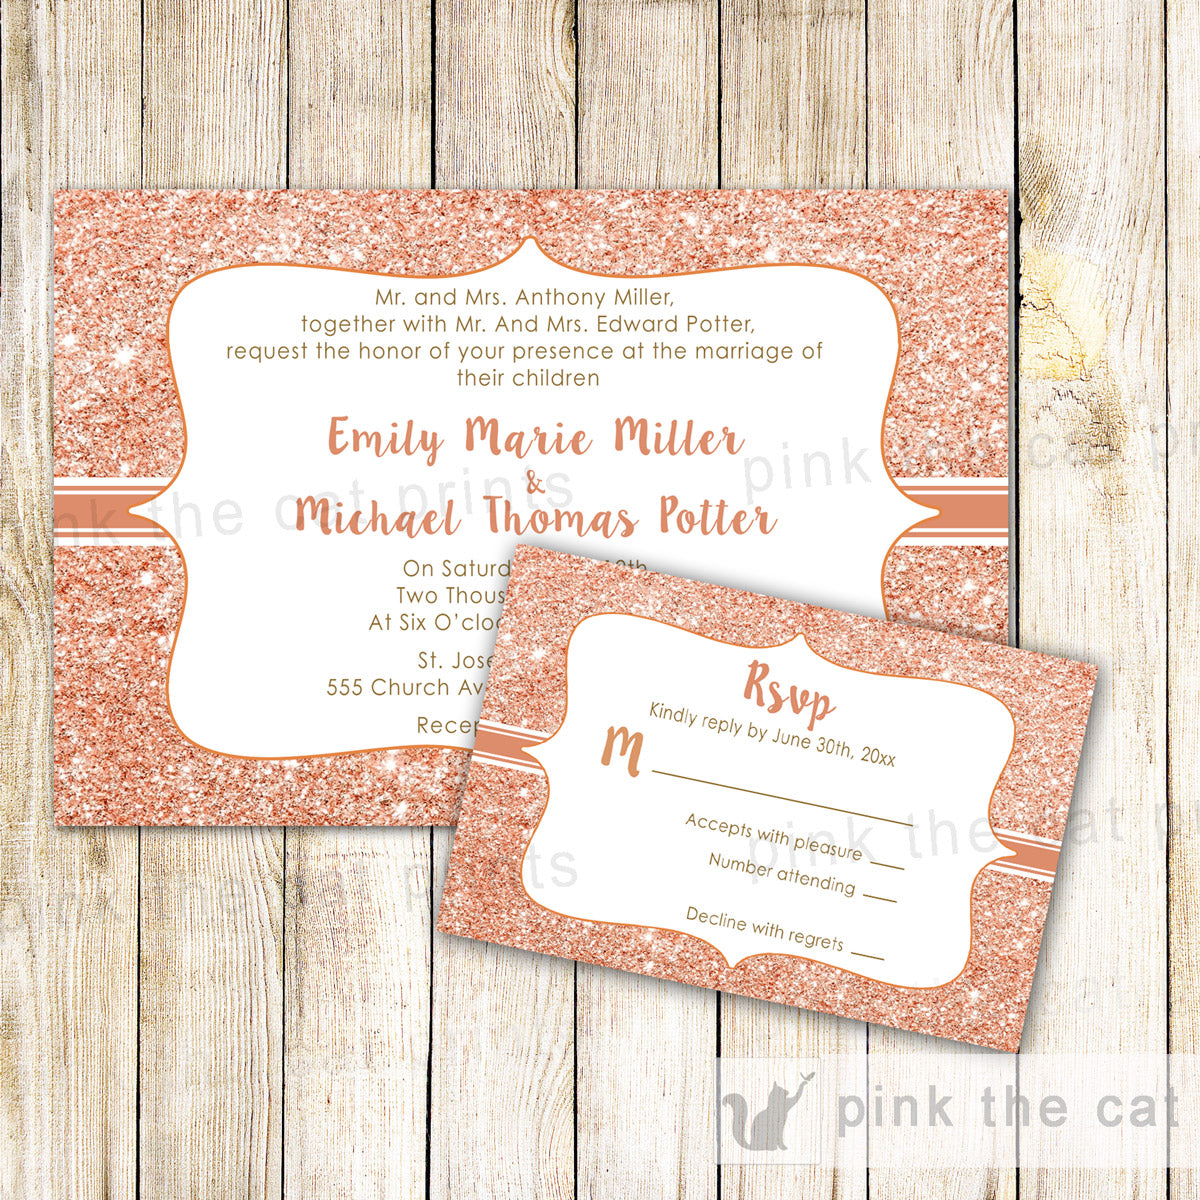 Rose Gold Glitter Wedding Invitations Rsvp Cards Pink The Cat